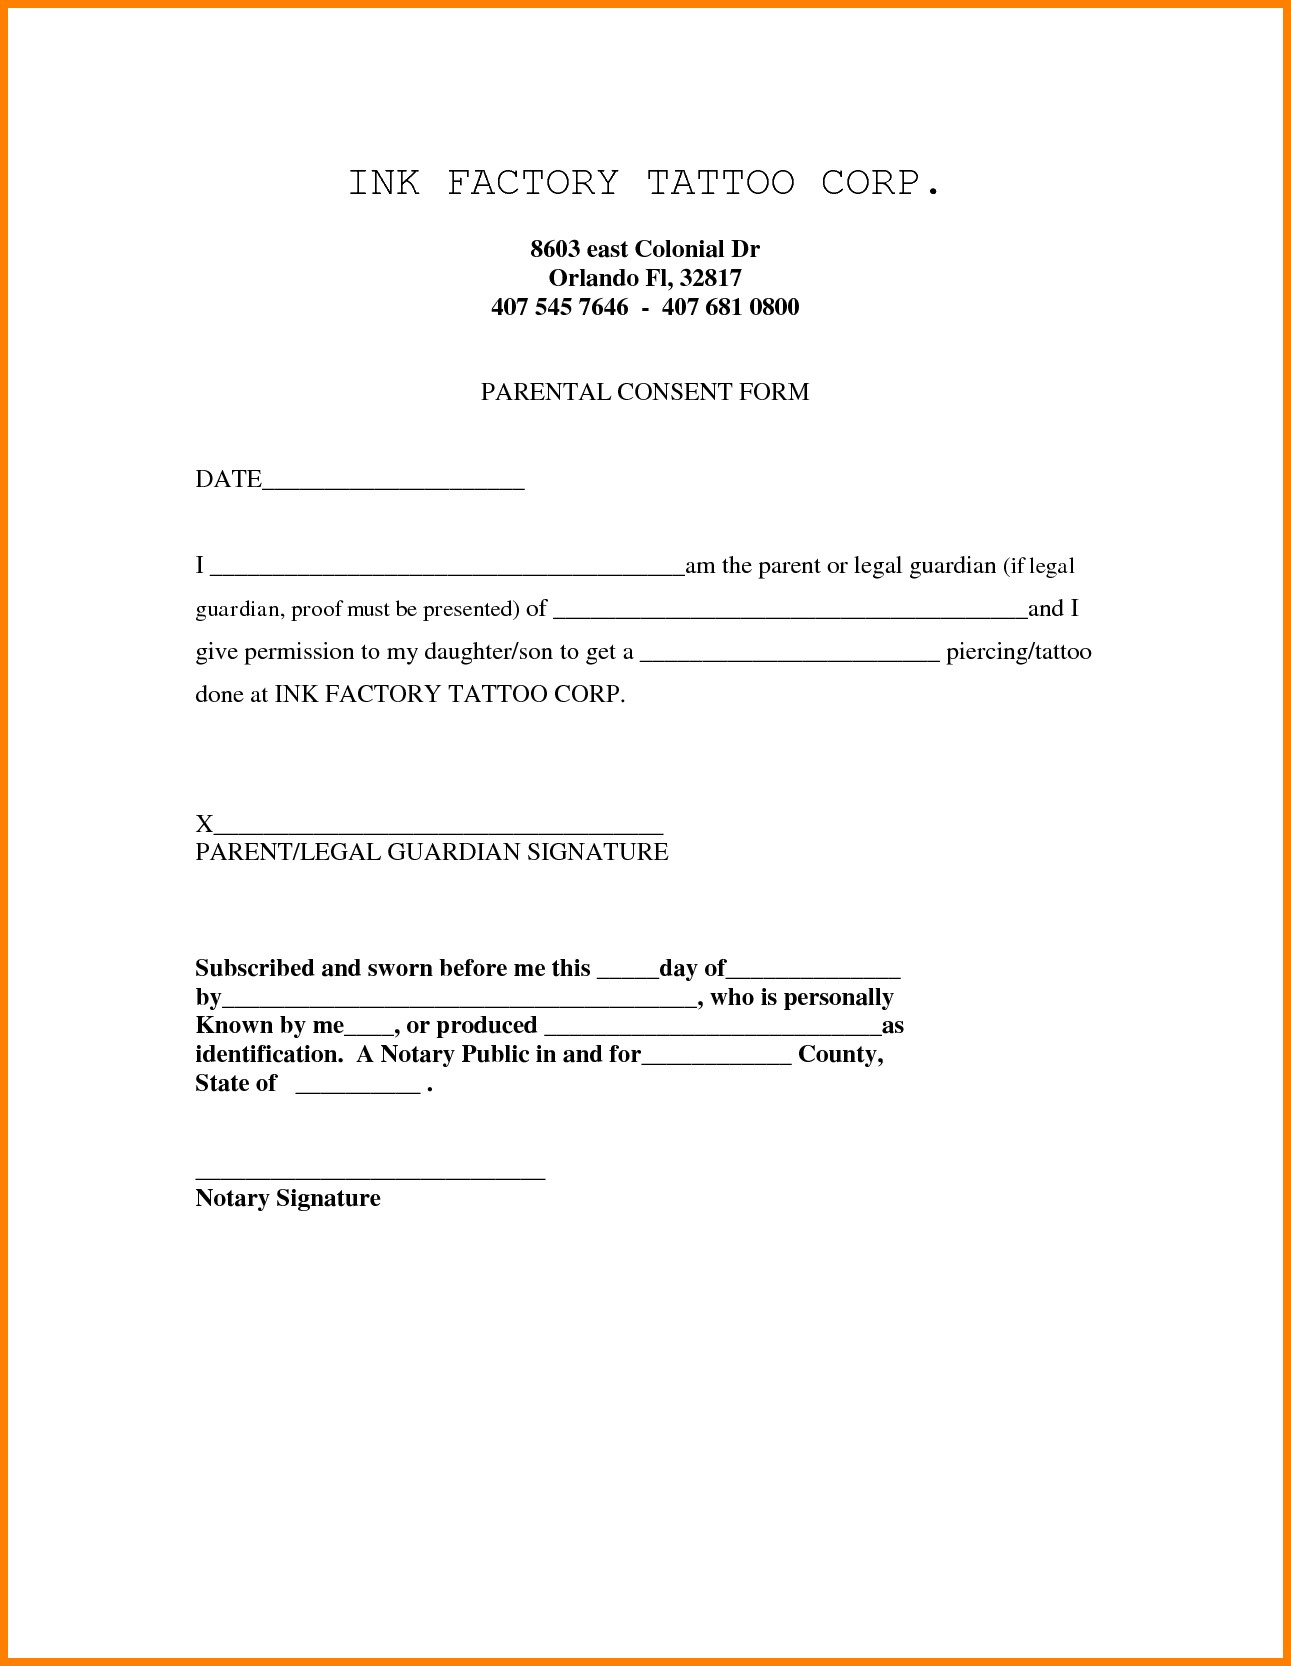 Notarized Letter for Guardianship Template - Best Sample Notarized Letter for Guardianship Ledger Paper School